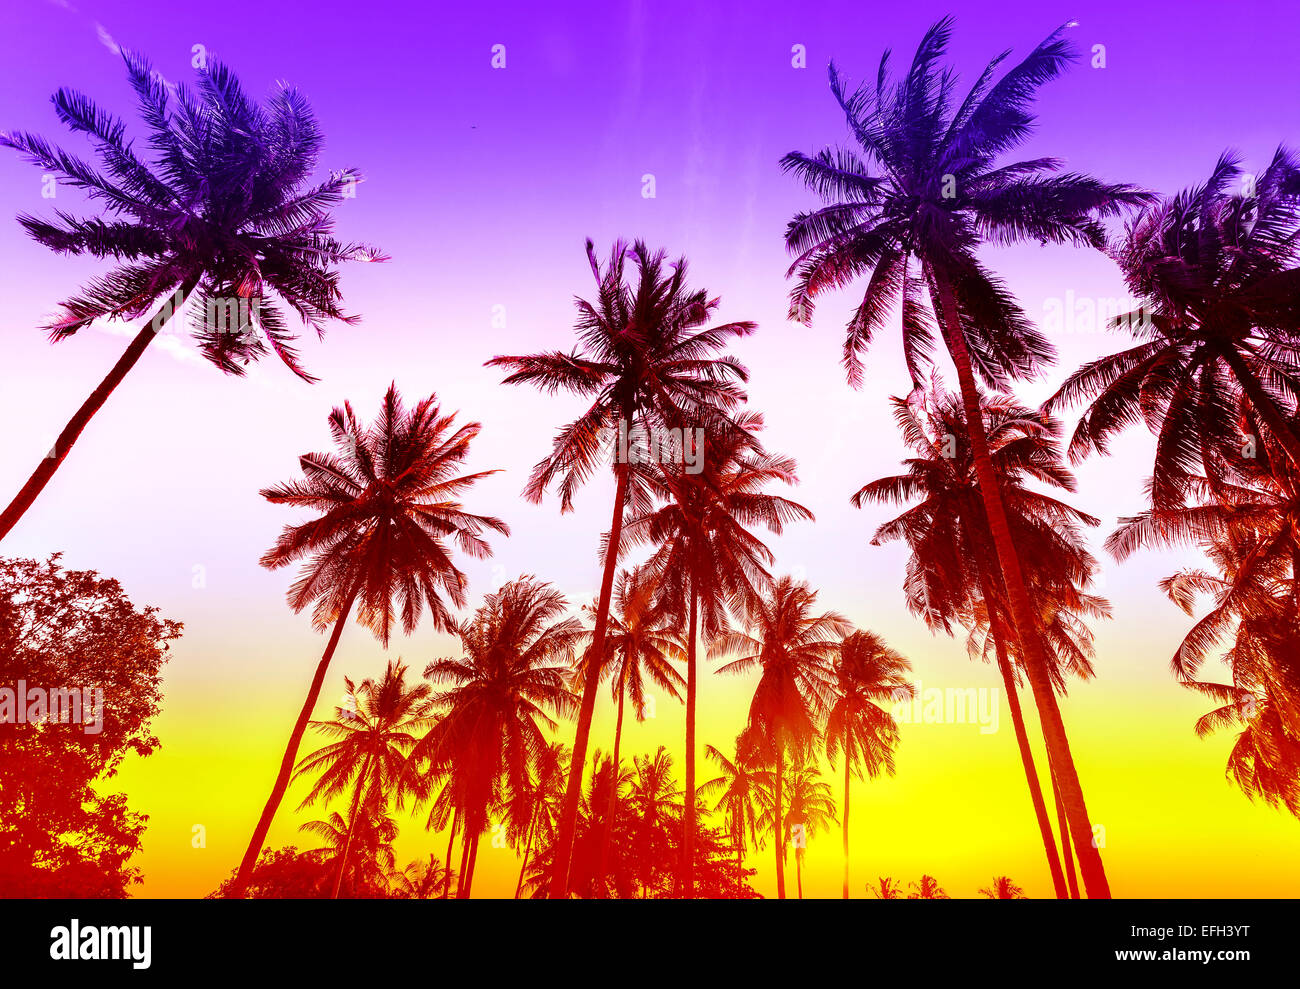 Palm trees silhouettes on tropical beach at sunset. Stock Photo